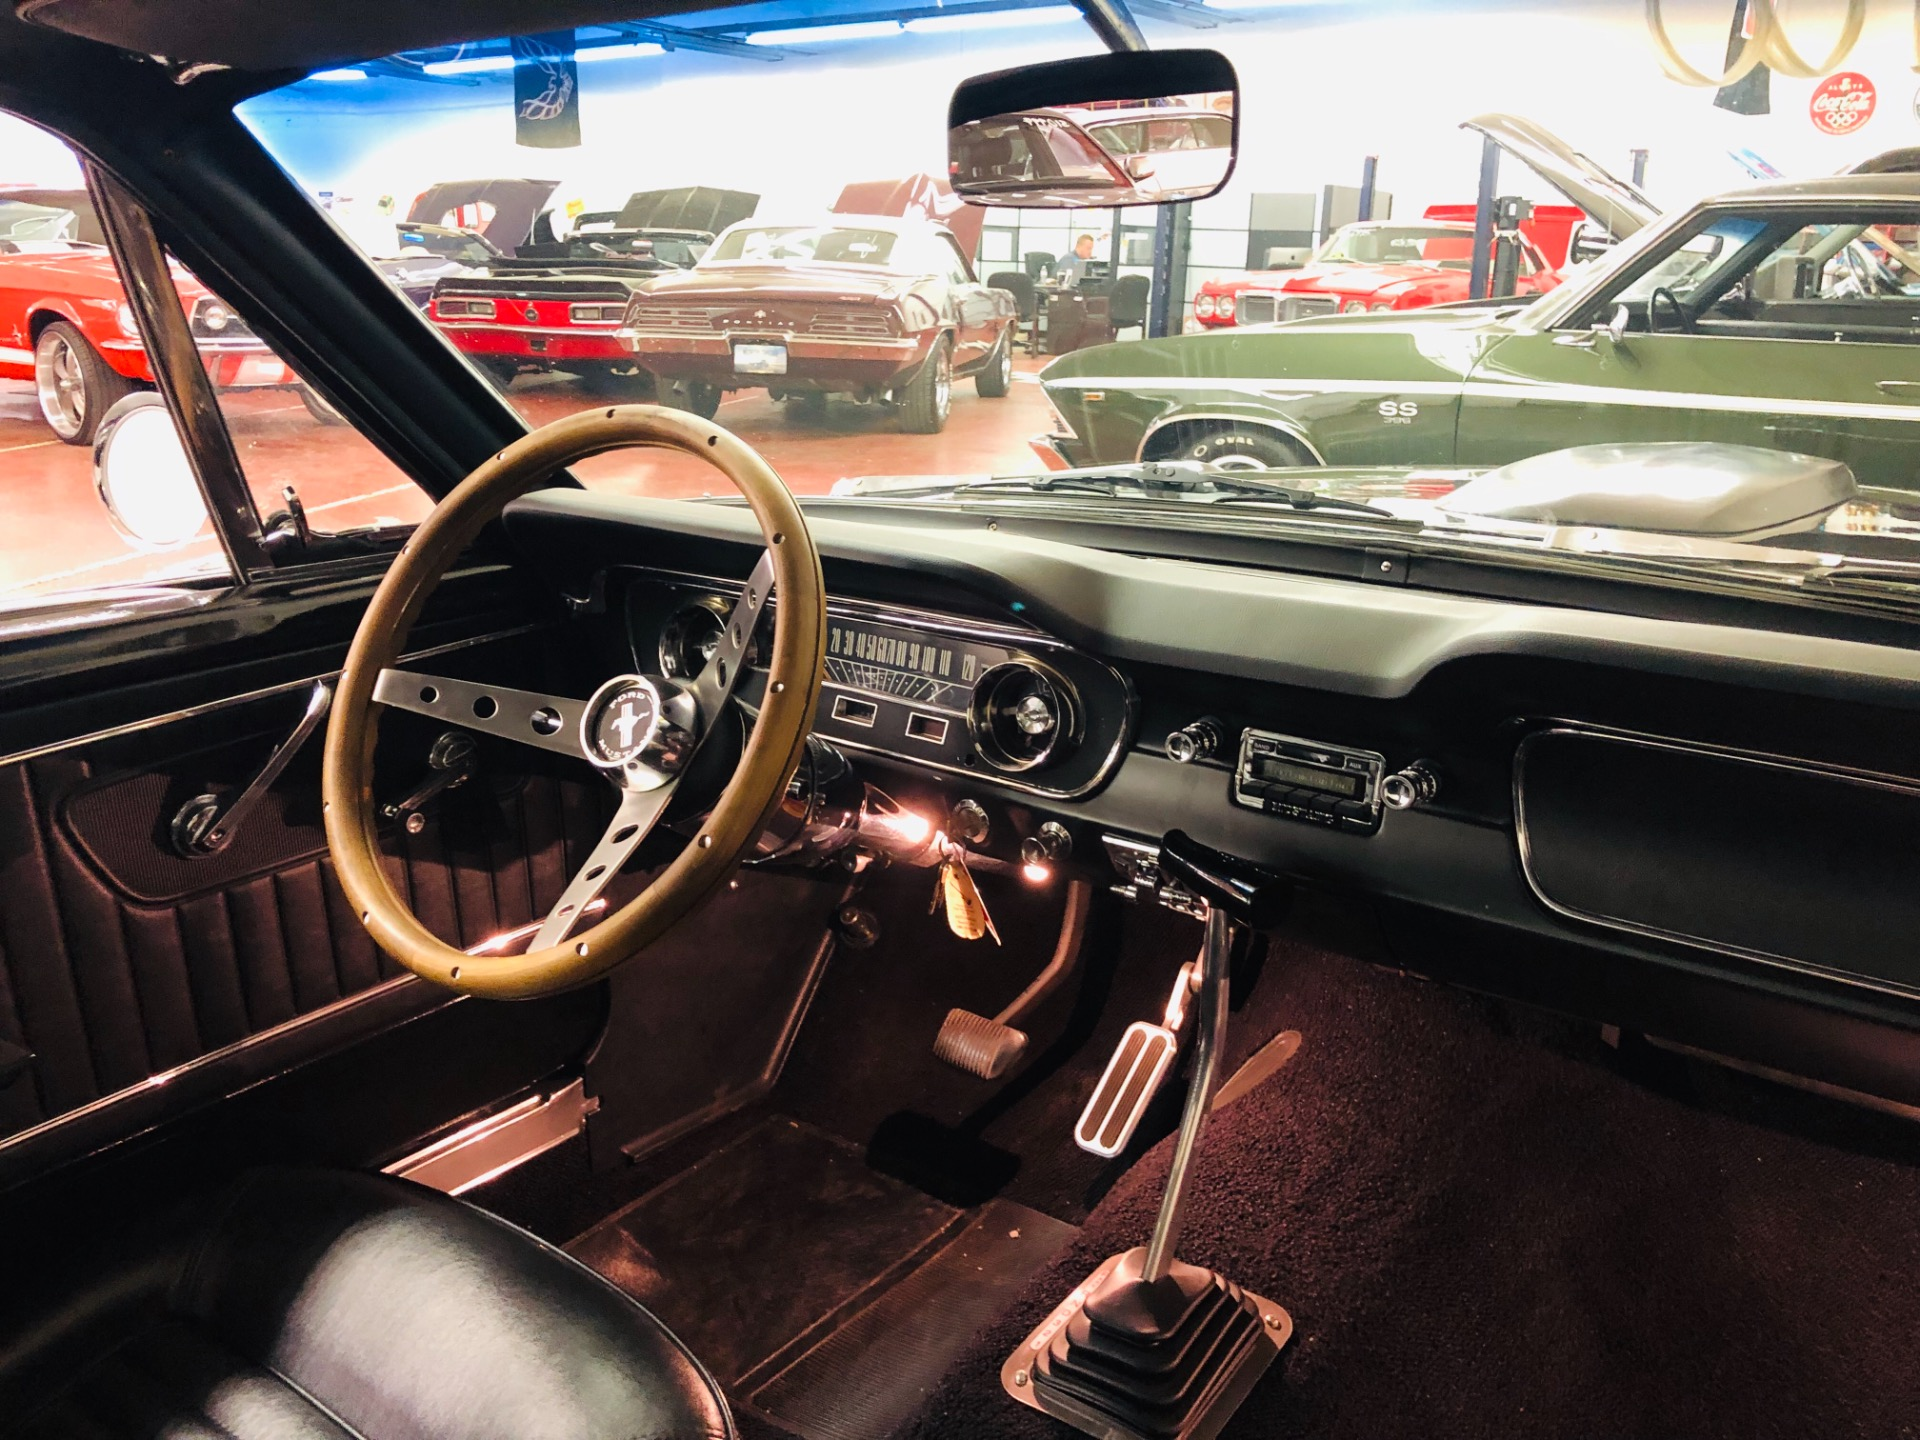 Used 1964 Ford Mustang -PRO TOURING LS1-64 1/2 PONY CLASSIC-WITH DASH COMMAND-DYNOED- SEE VIDEO | Mundelein, IL